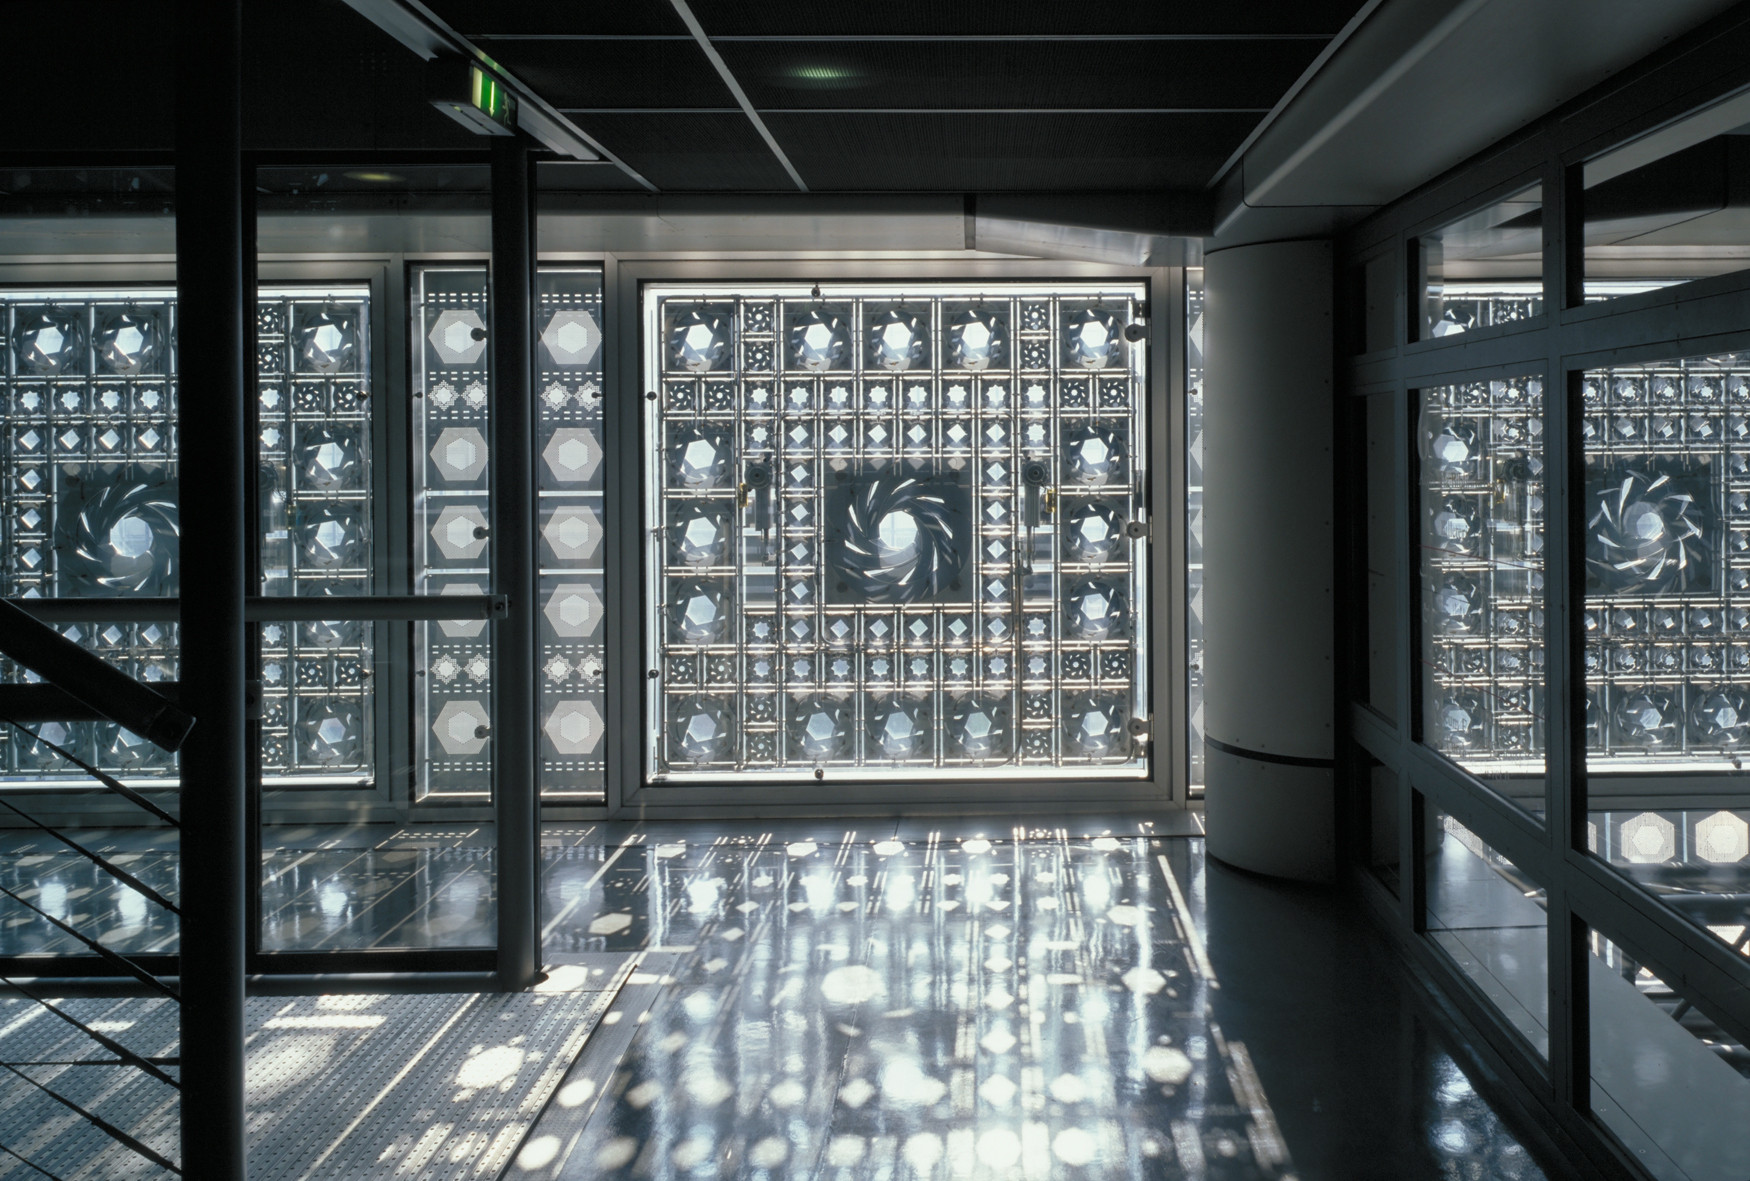 Light Matters: Mashrabiyas - Translating Tradition into Dynamic Facades, INSTITUT DU MONDE ARABE, Paris, France (1981 – 1987). Architecture: Jean Nouvel, Gilbert Lézénès, Pierre Soria, Architecture Studio. Image © Georges Fessy